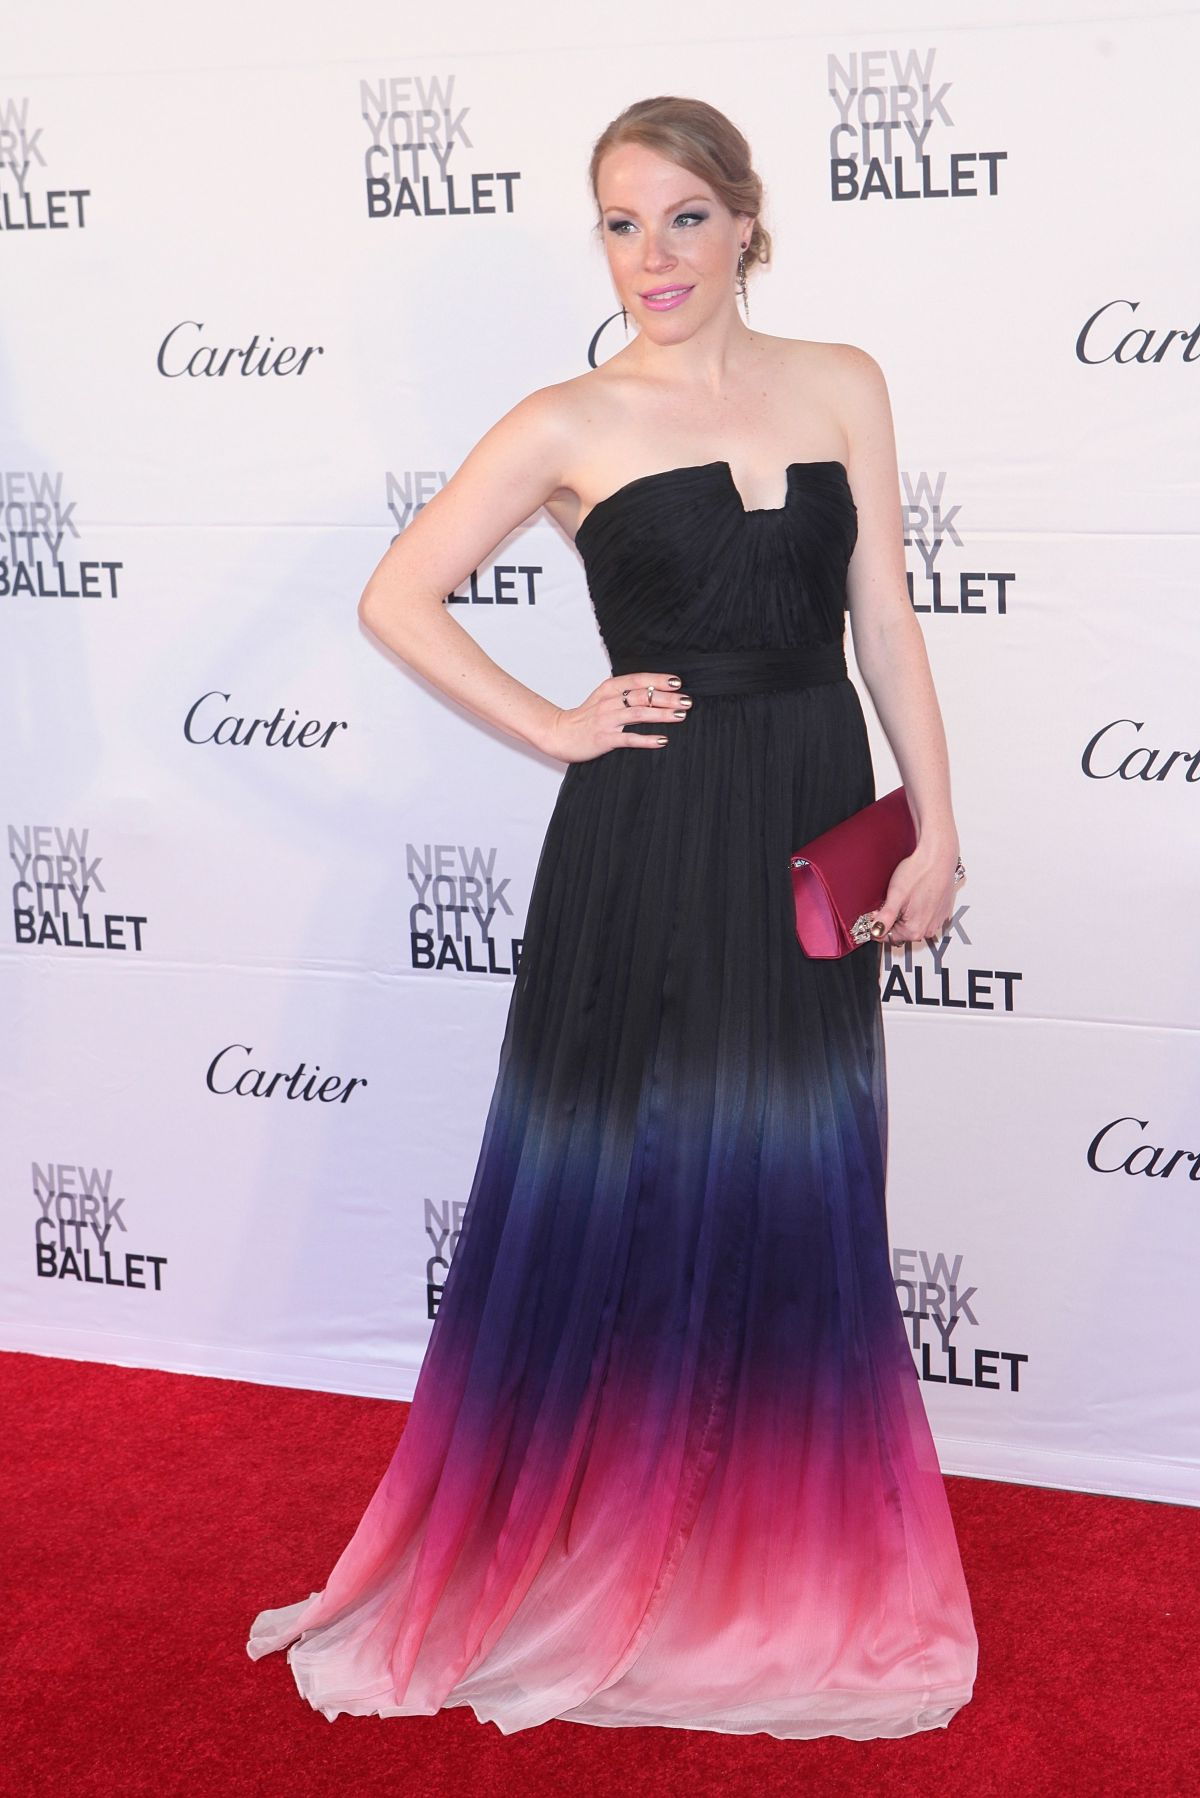 EMMA MYLES at New York City Ballet Spring Gala 05/04/2017